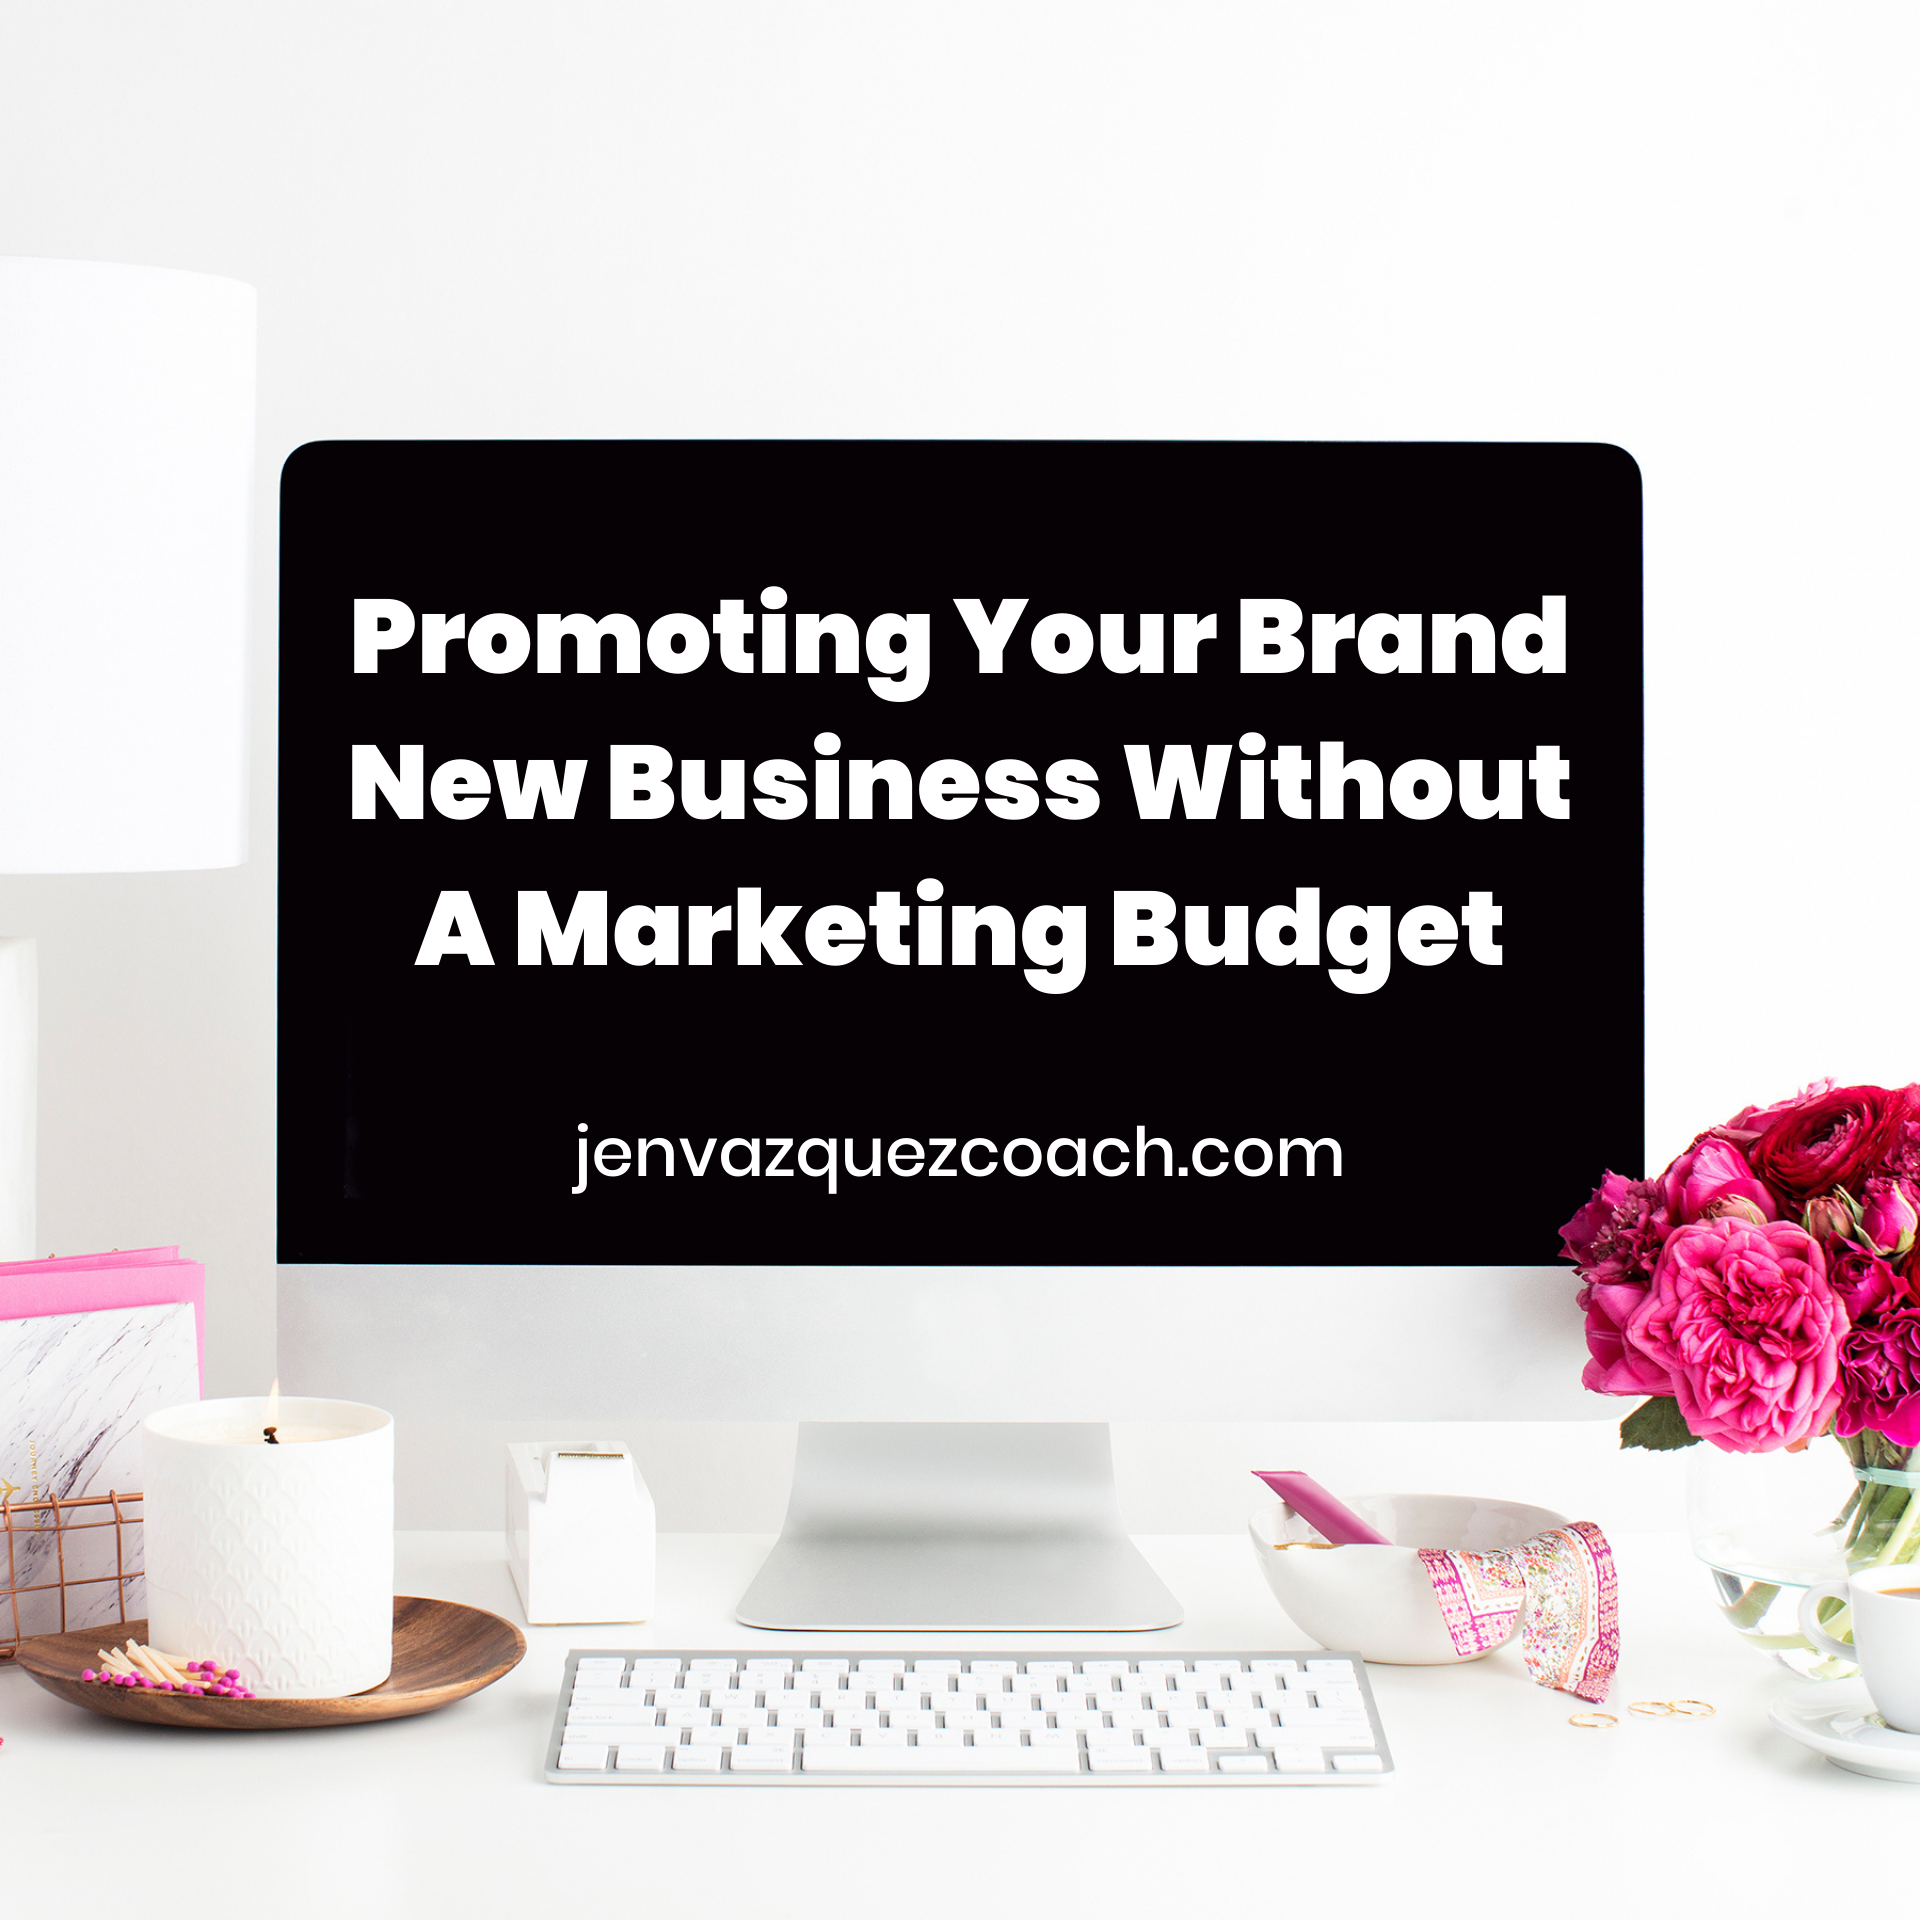 Promoting Your Brand New Business Without A Marketing Budget